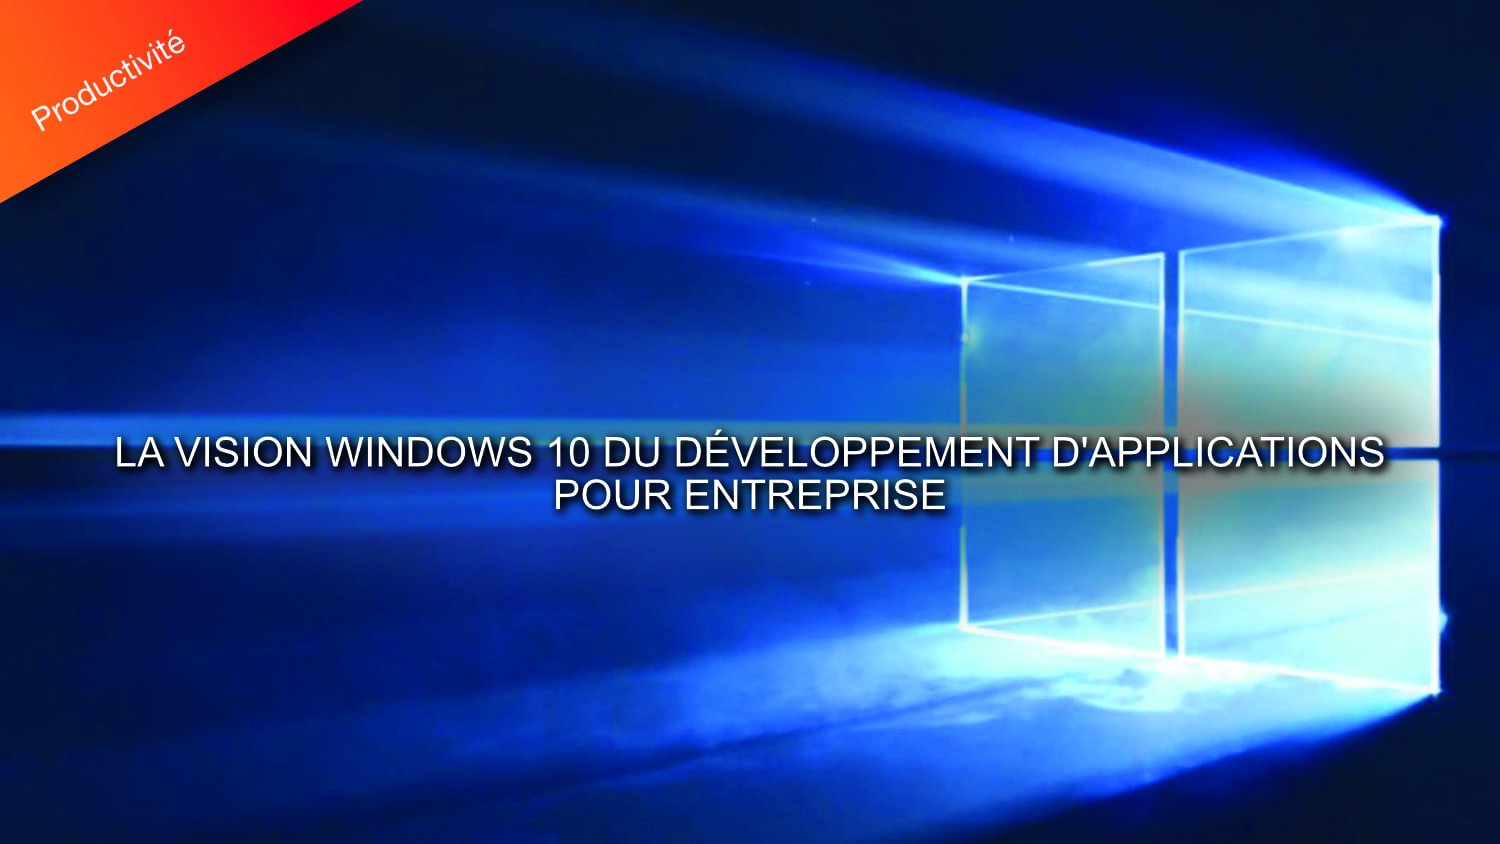 développement d'applications entreprise windows 10